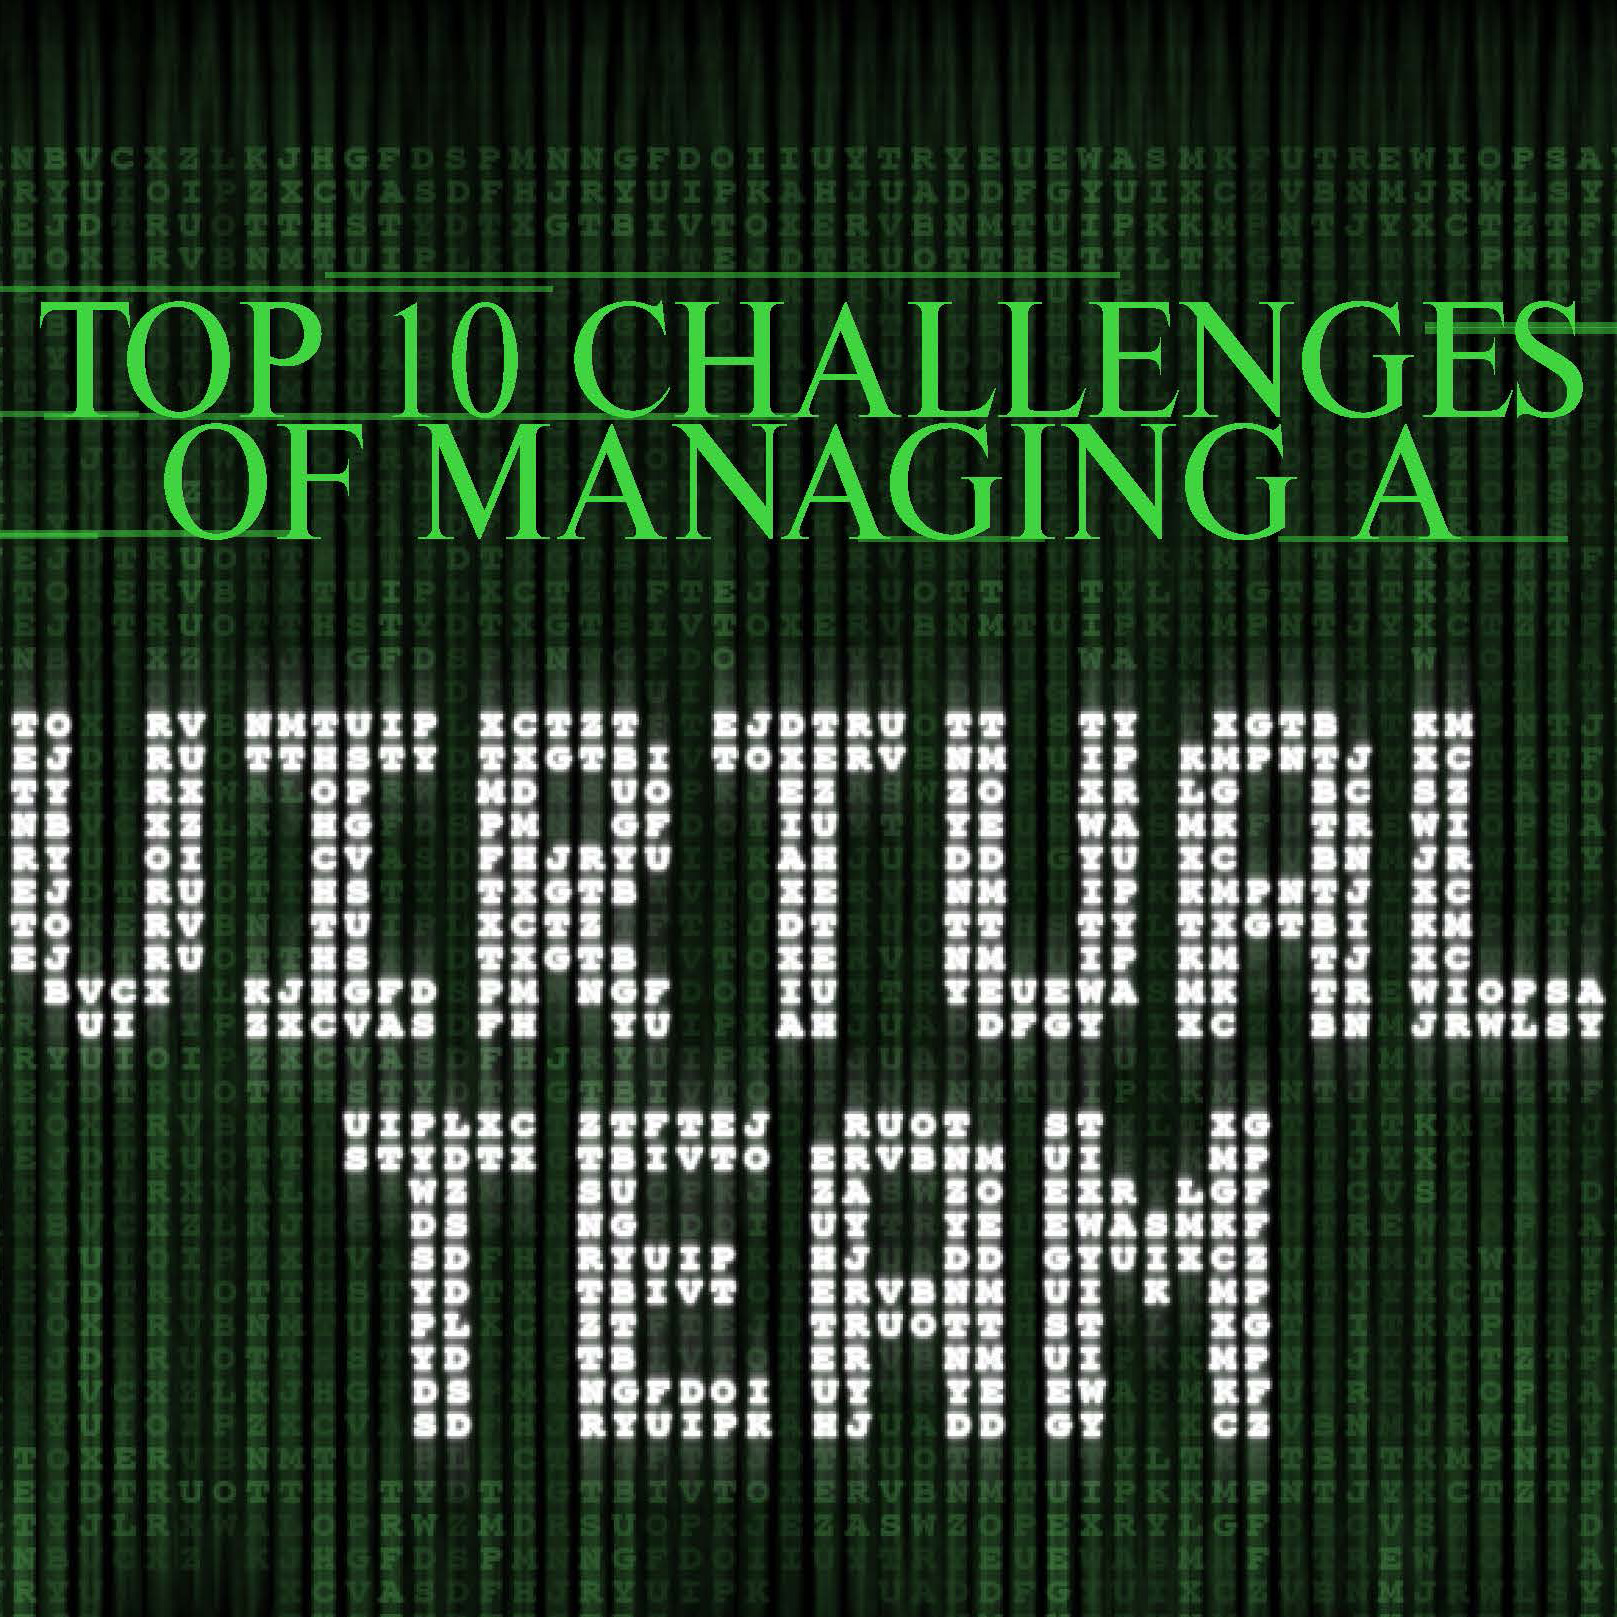 Top 10 Challenges of Managing a Virtual Team